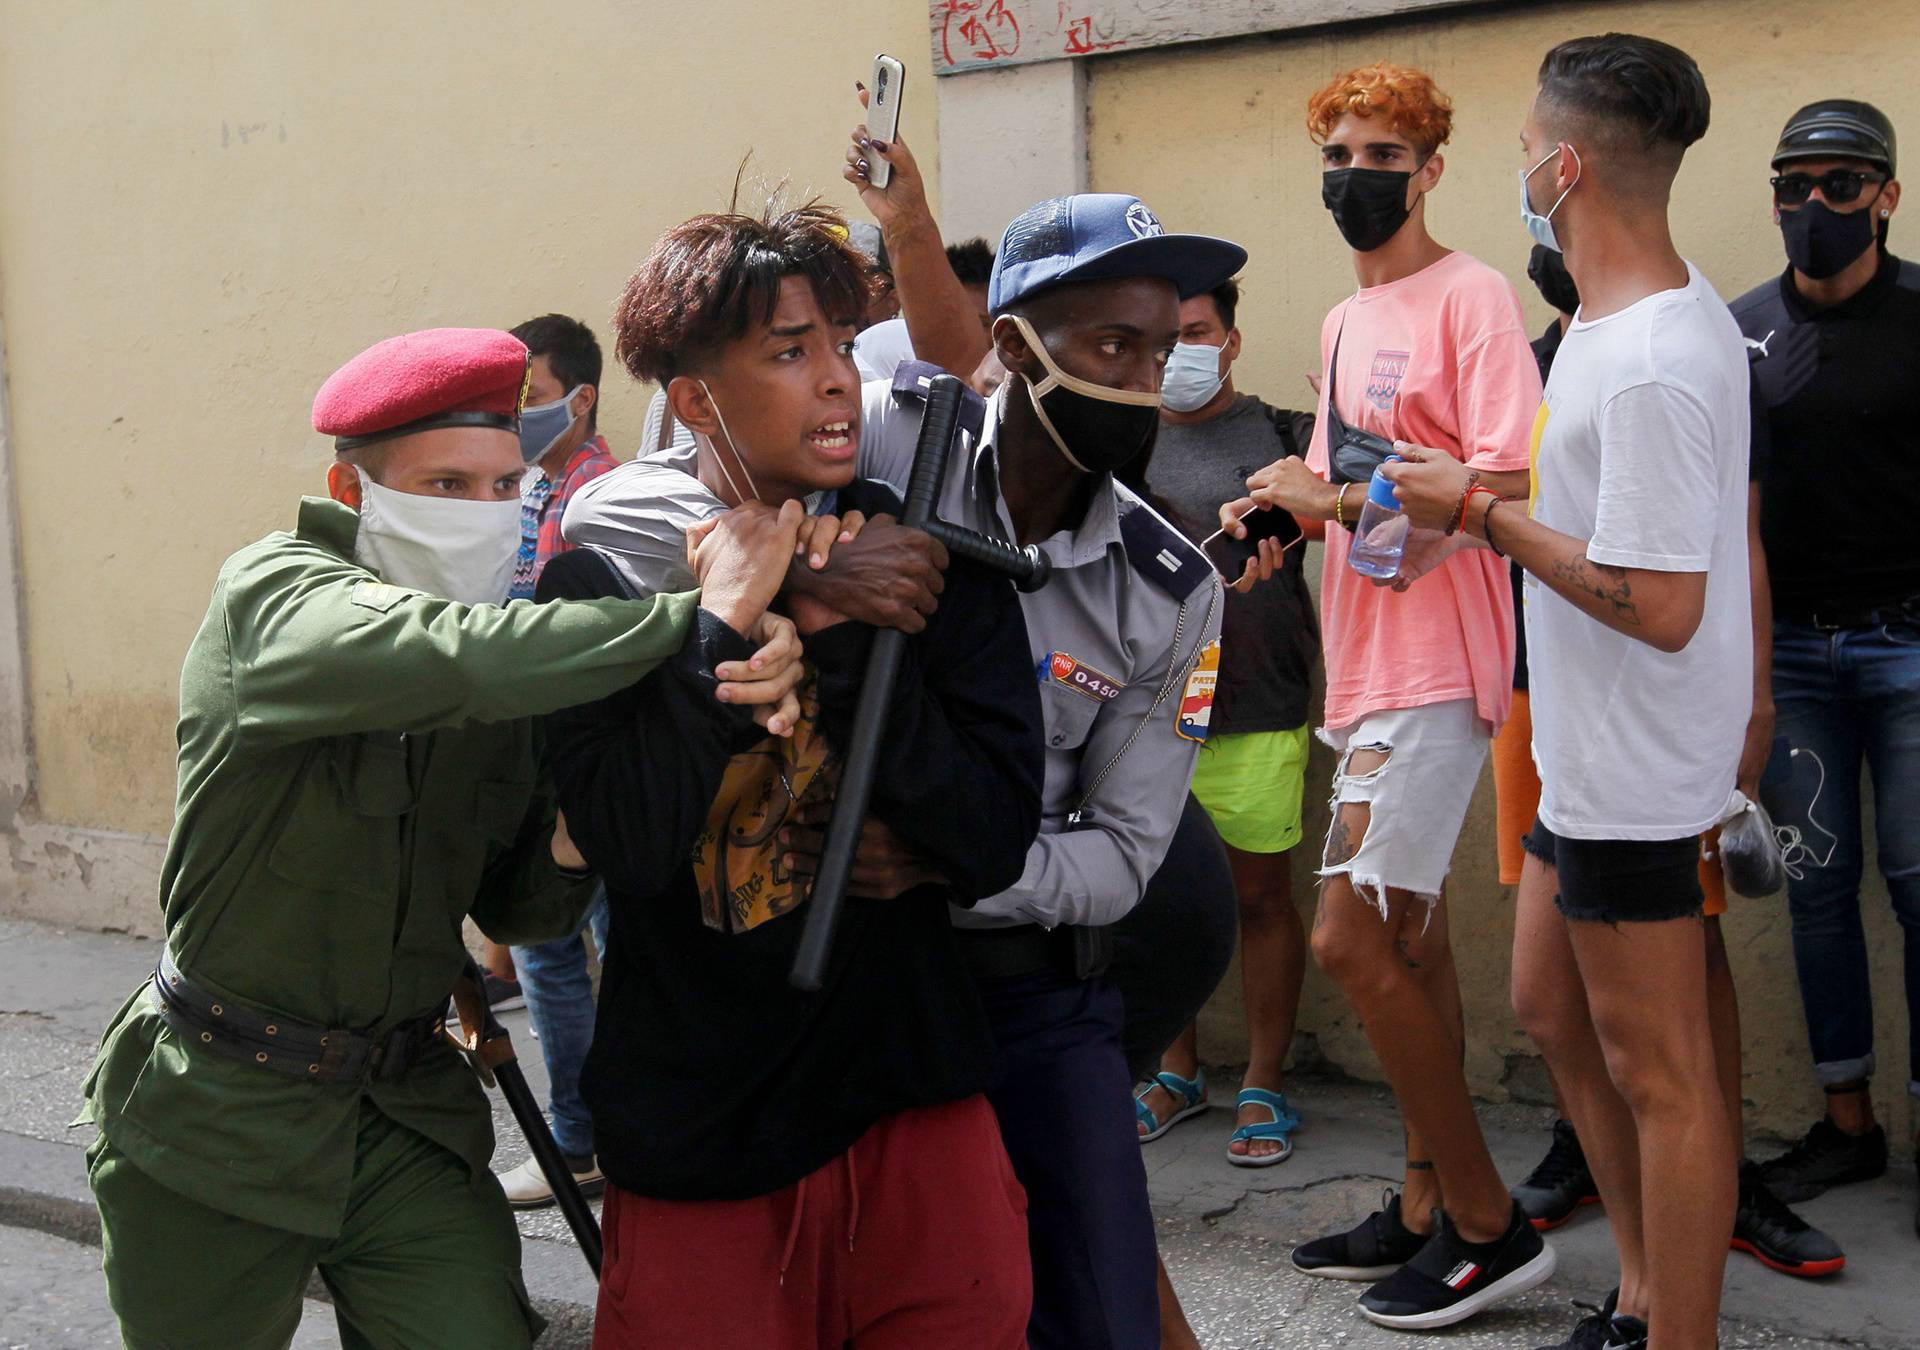 Police detain a person during protests against and in support of the government, in Havana